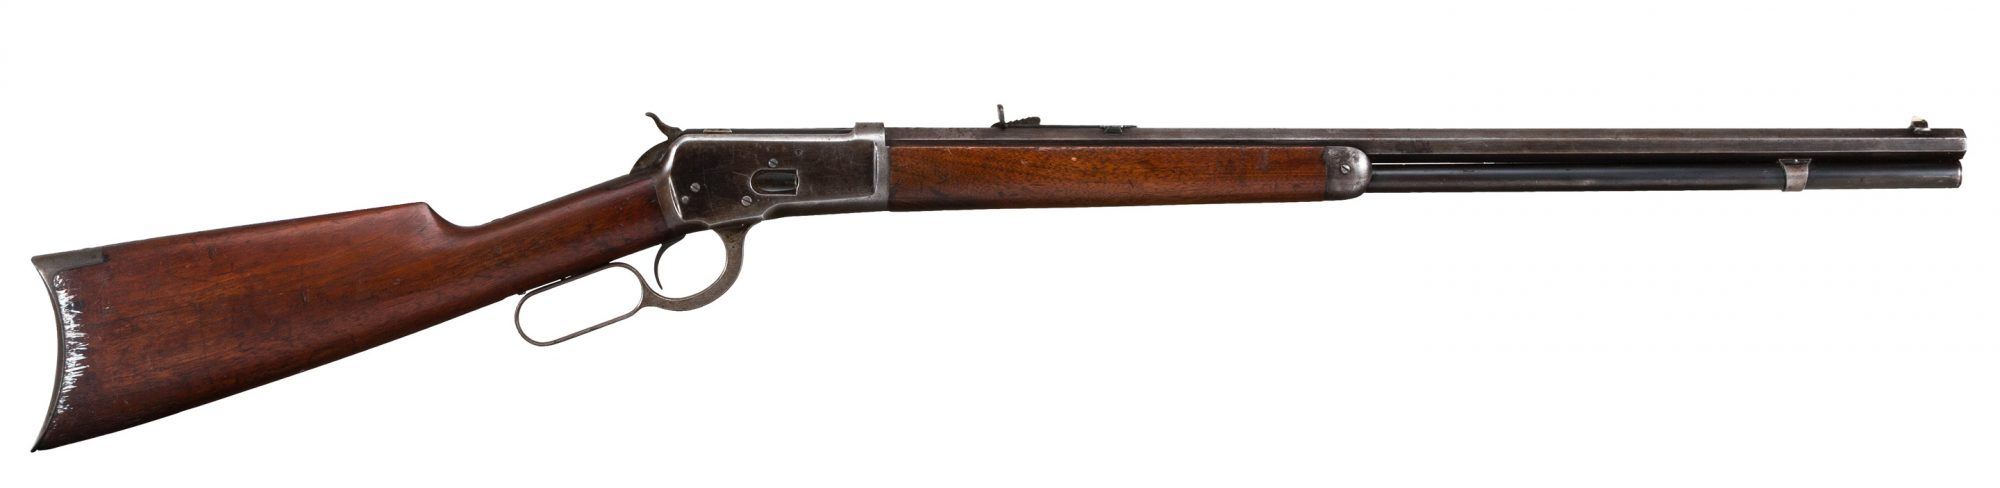 1894 Winchester 1892 before restoration